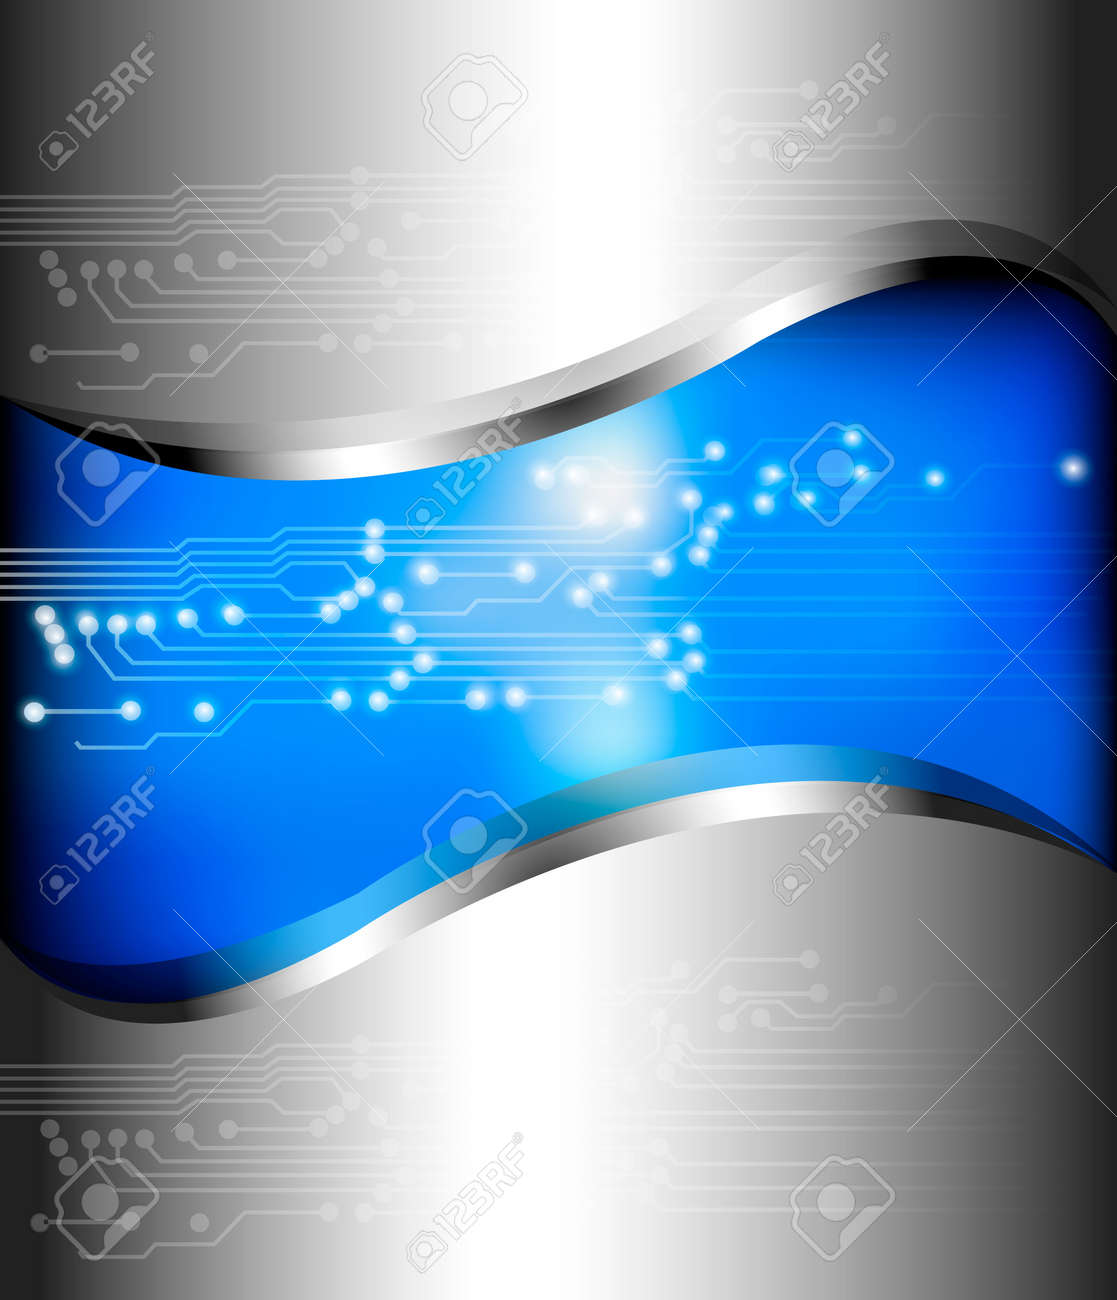 Abstract background with circuit map. Vector illustration. Stock Vector - 10205191